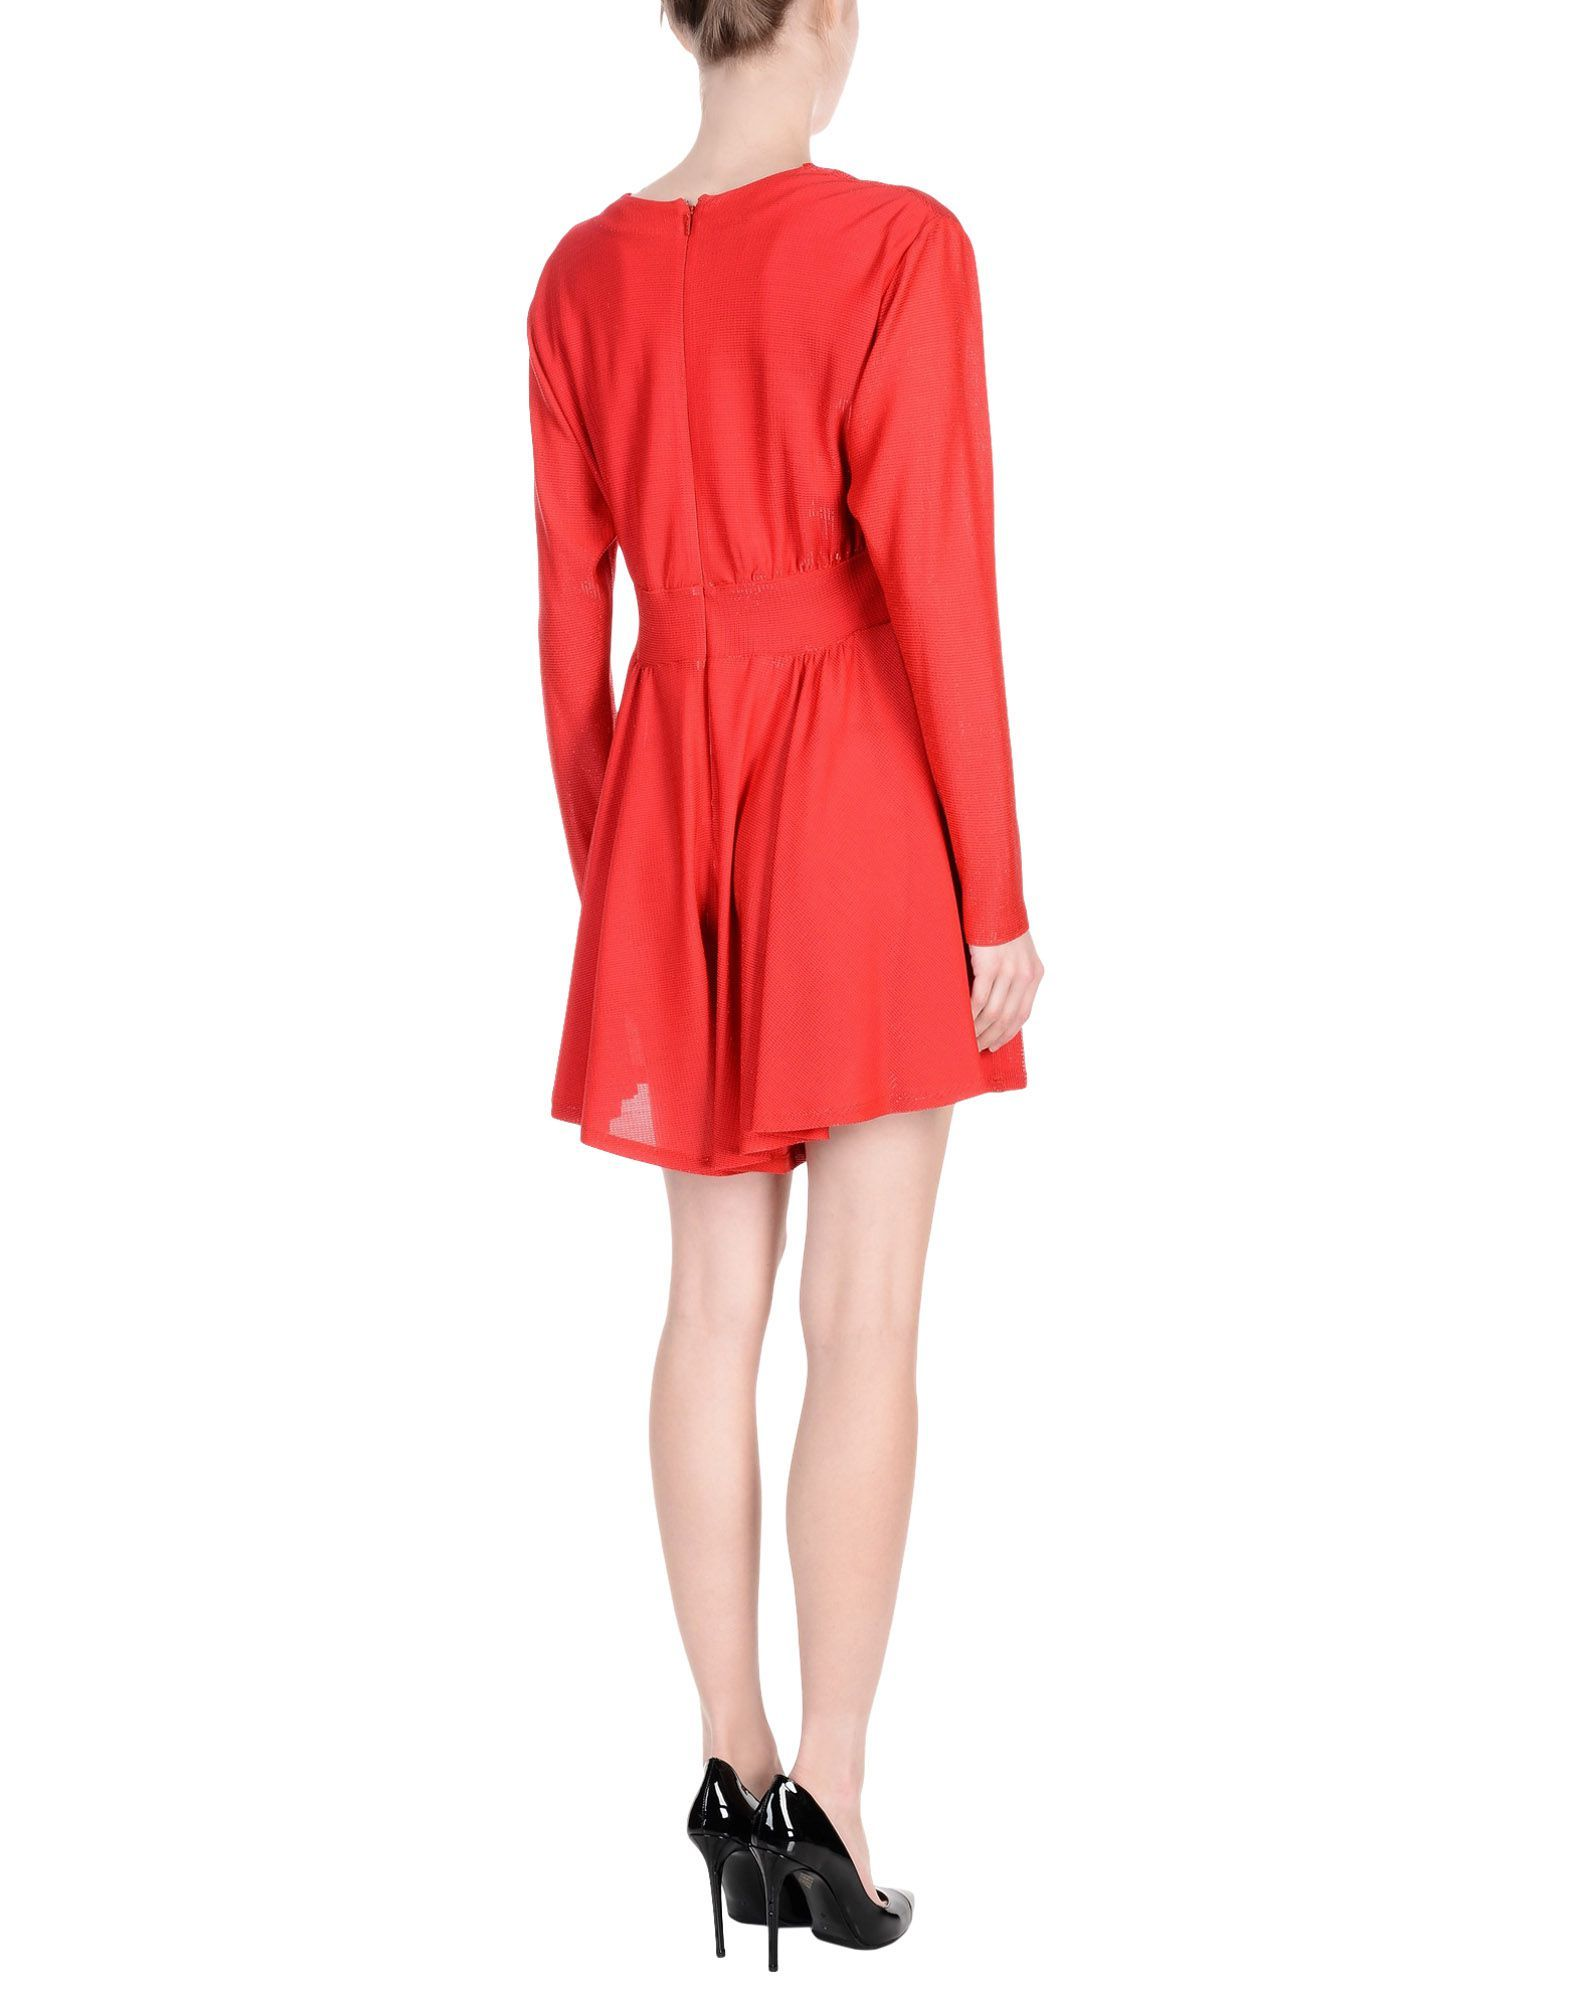 Pinko Red Playsuit